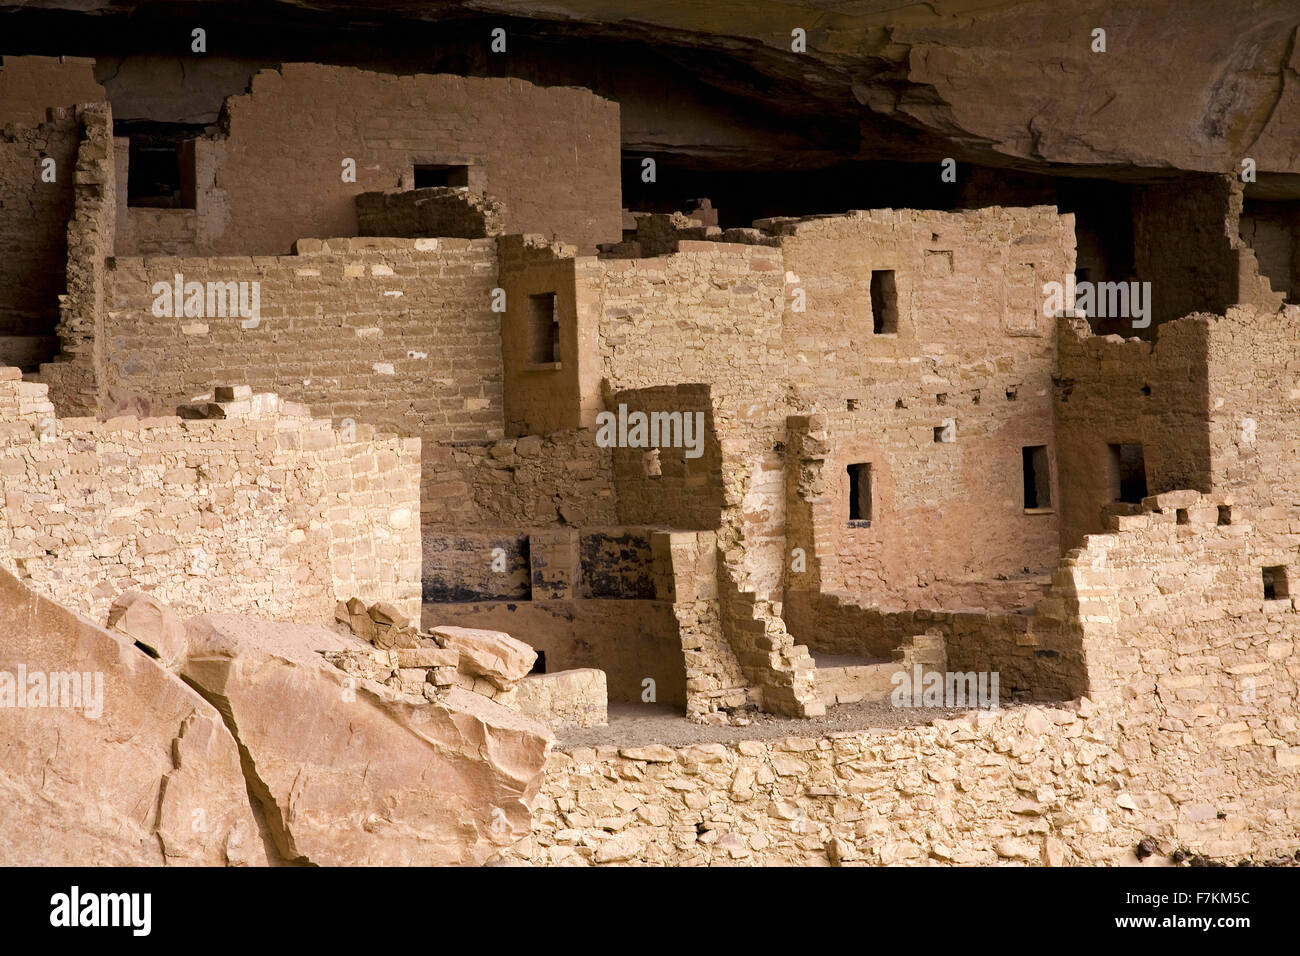 Cliff Palace cliff dwelling Indian ruin, the largest in North America, Mesa Verde National Park, Southwestern Colorado - Stock Image